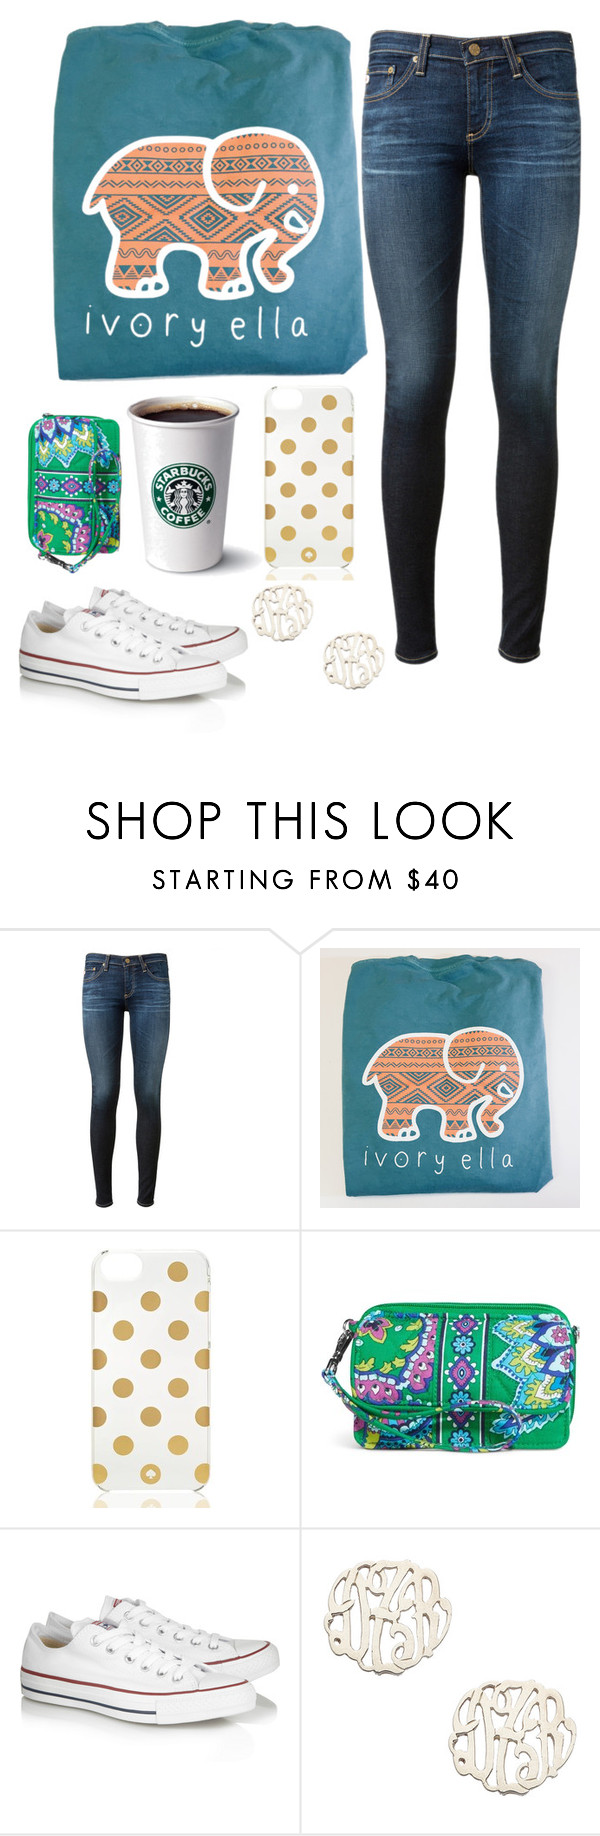 """Ready for Church tonight❤️"" by theblonde07 ❤ liked on Polyvore featuring AG Adriano Goldschmied, Kate Spade, Vera Bradley, Converse, Danielle Stevens and blondiesbest"